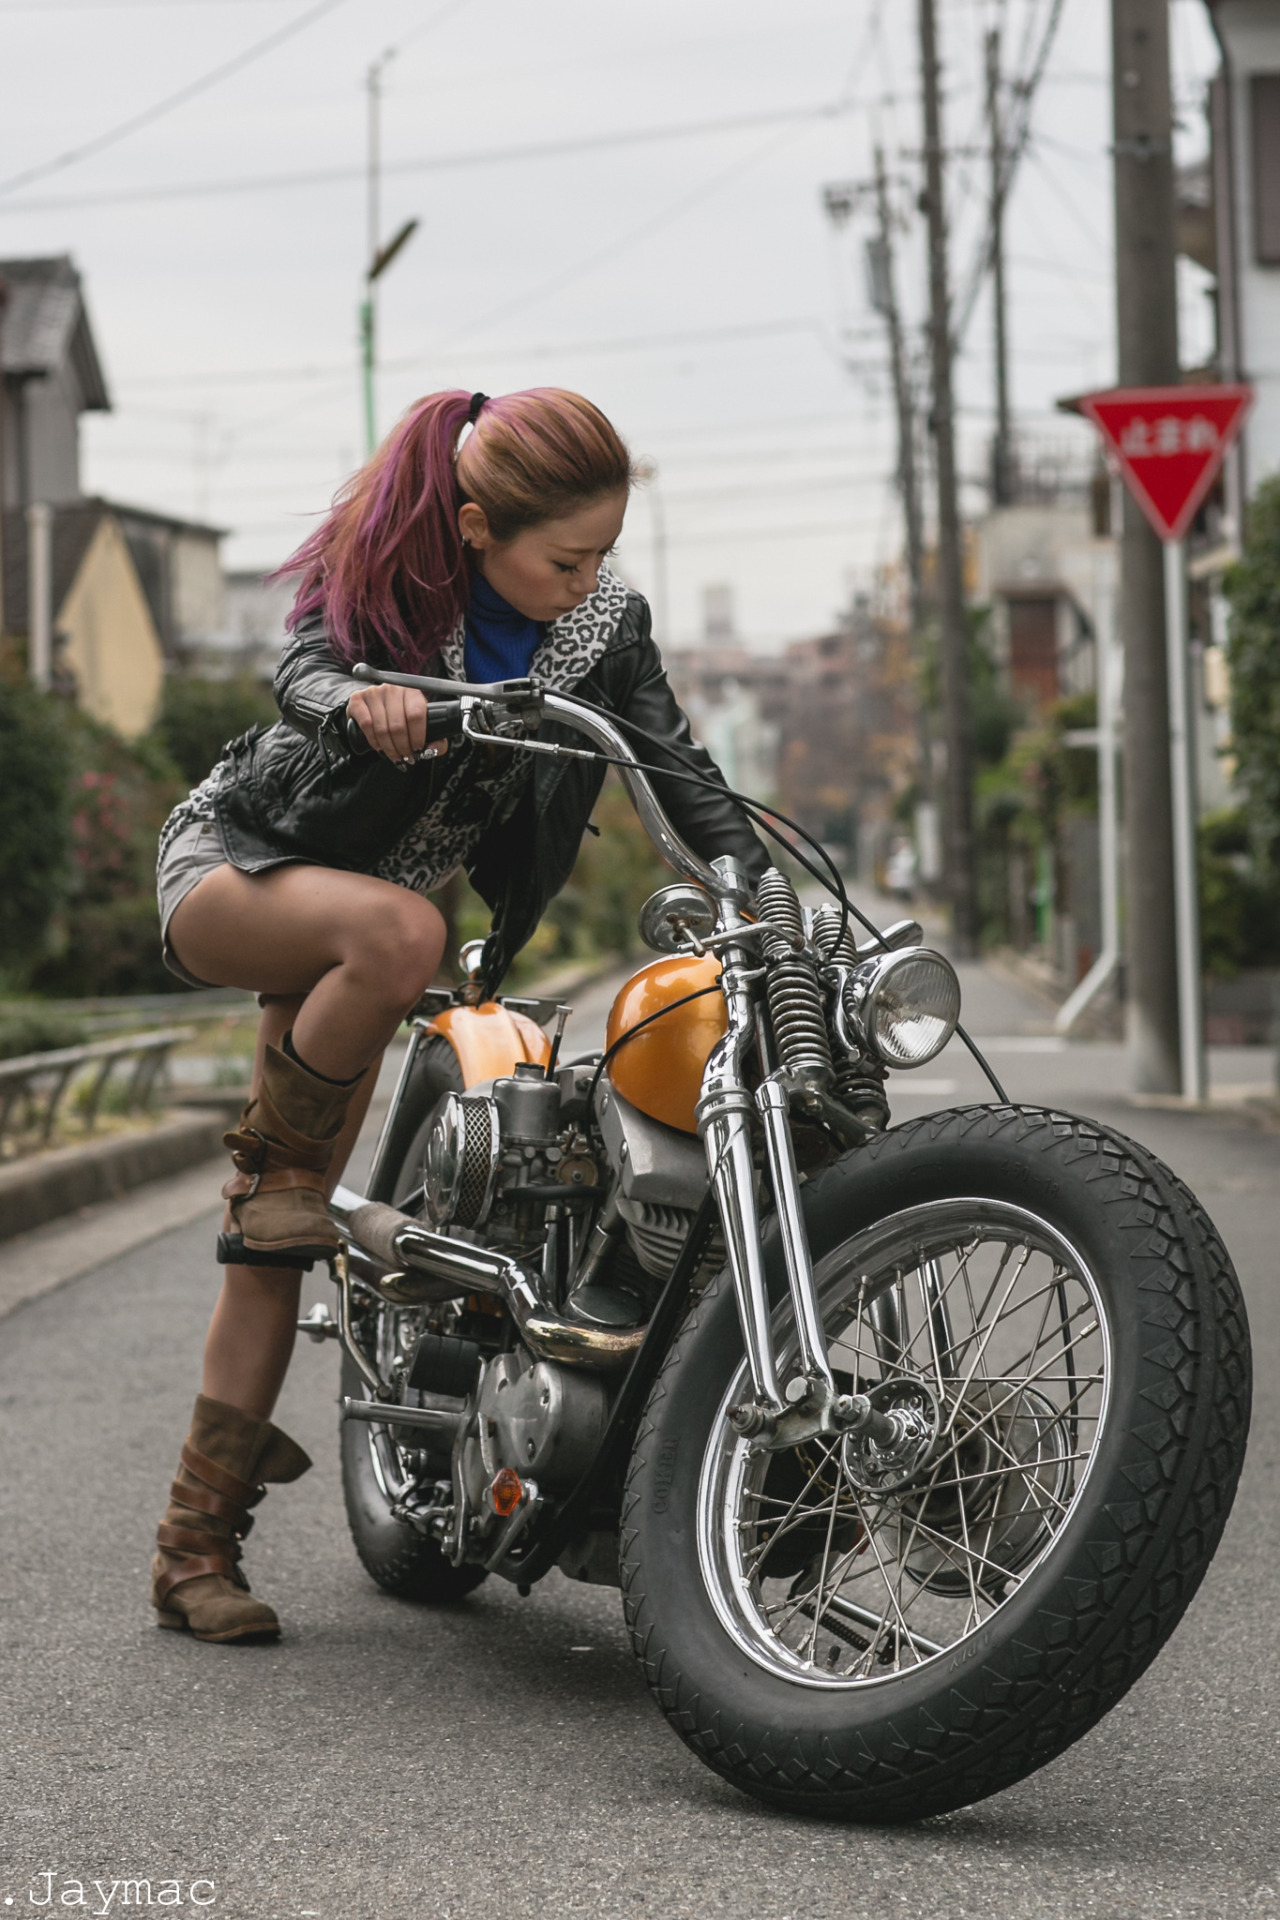 Garage Am Hang Girls On Motorcycles - Pics And Comments - Page 884